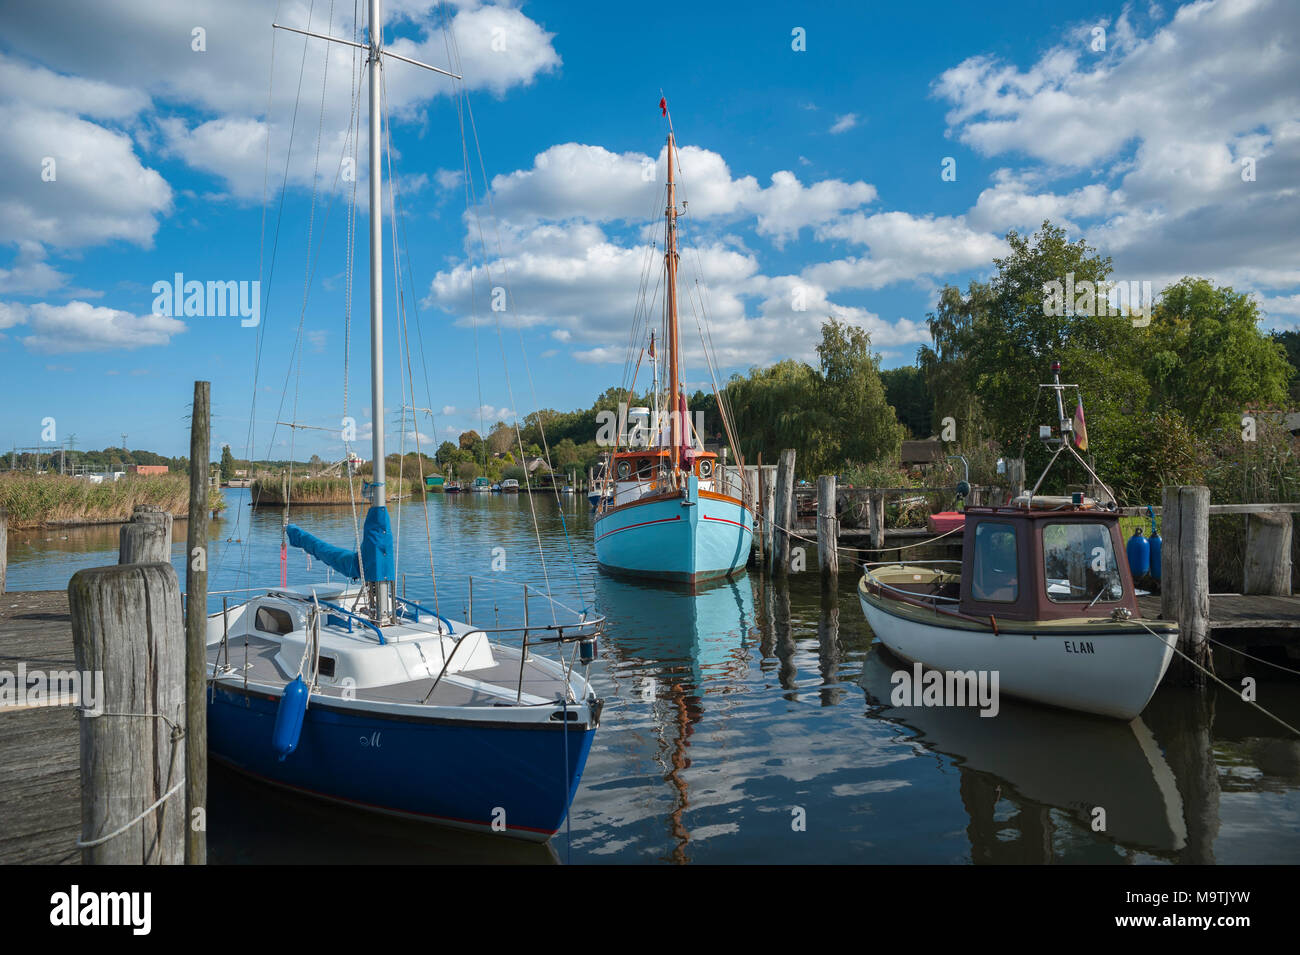 Fishing boats in natural harbor of the fishing village Gothmund at the river Trave, Gothmund, Baltic Sea, Schleswig-Holstein, Germany, Europe - Stock Image